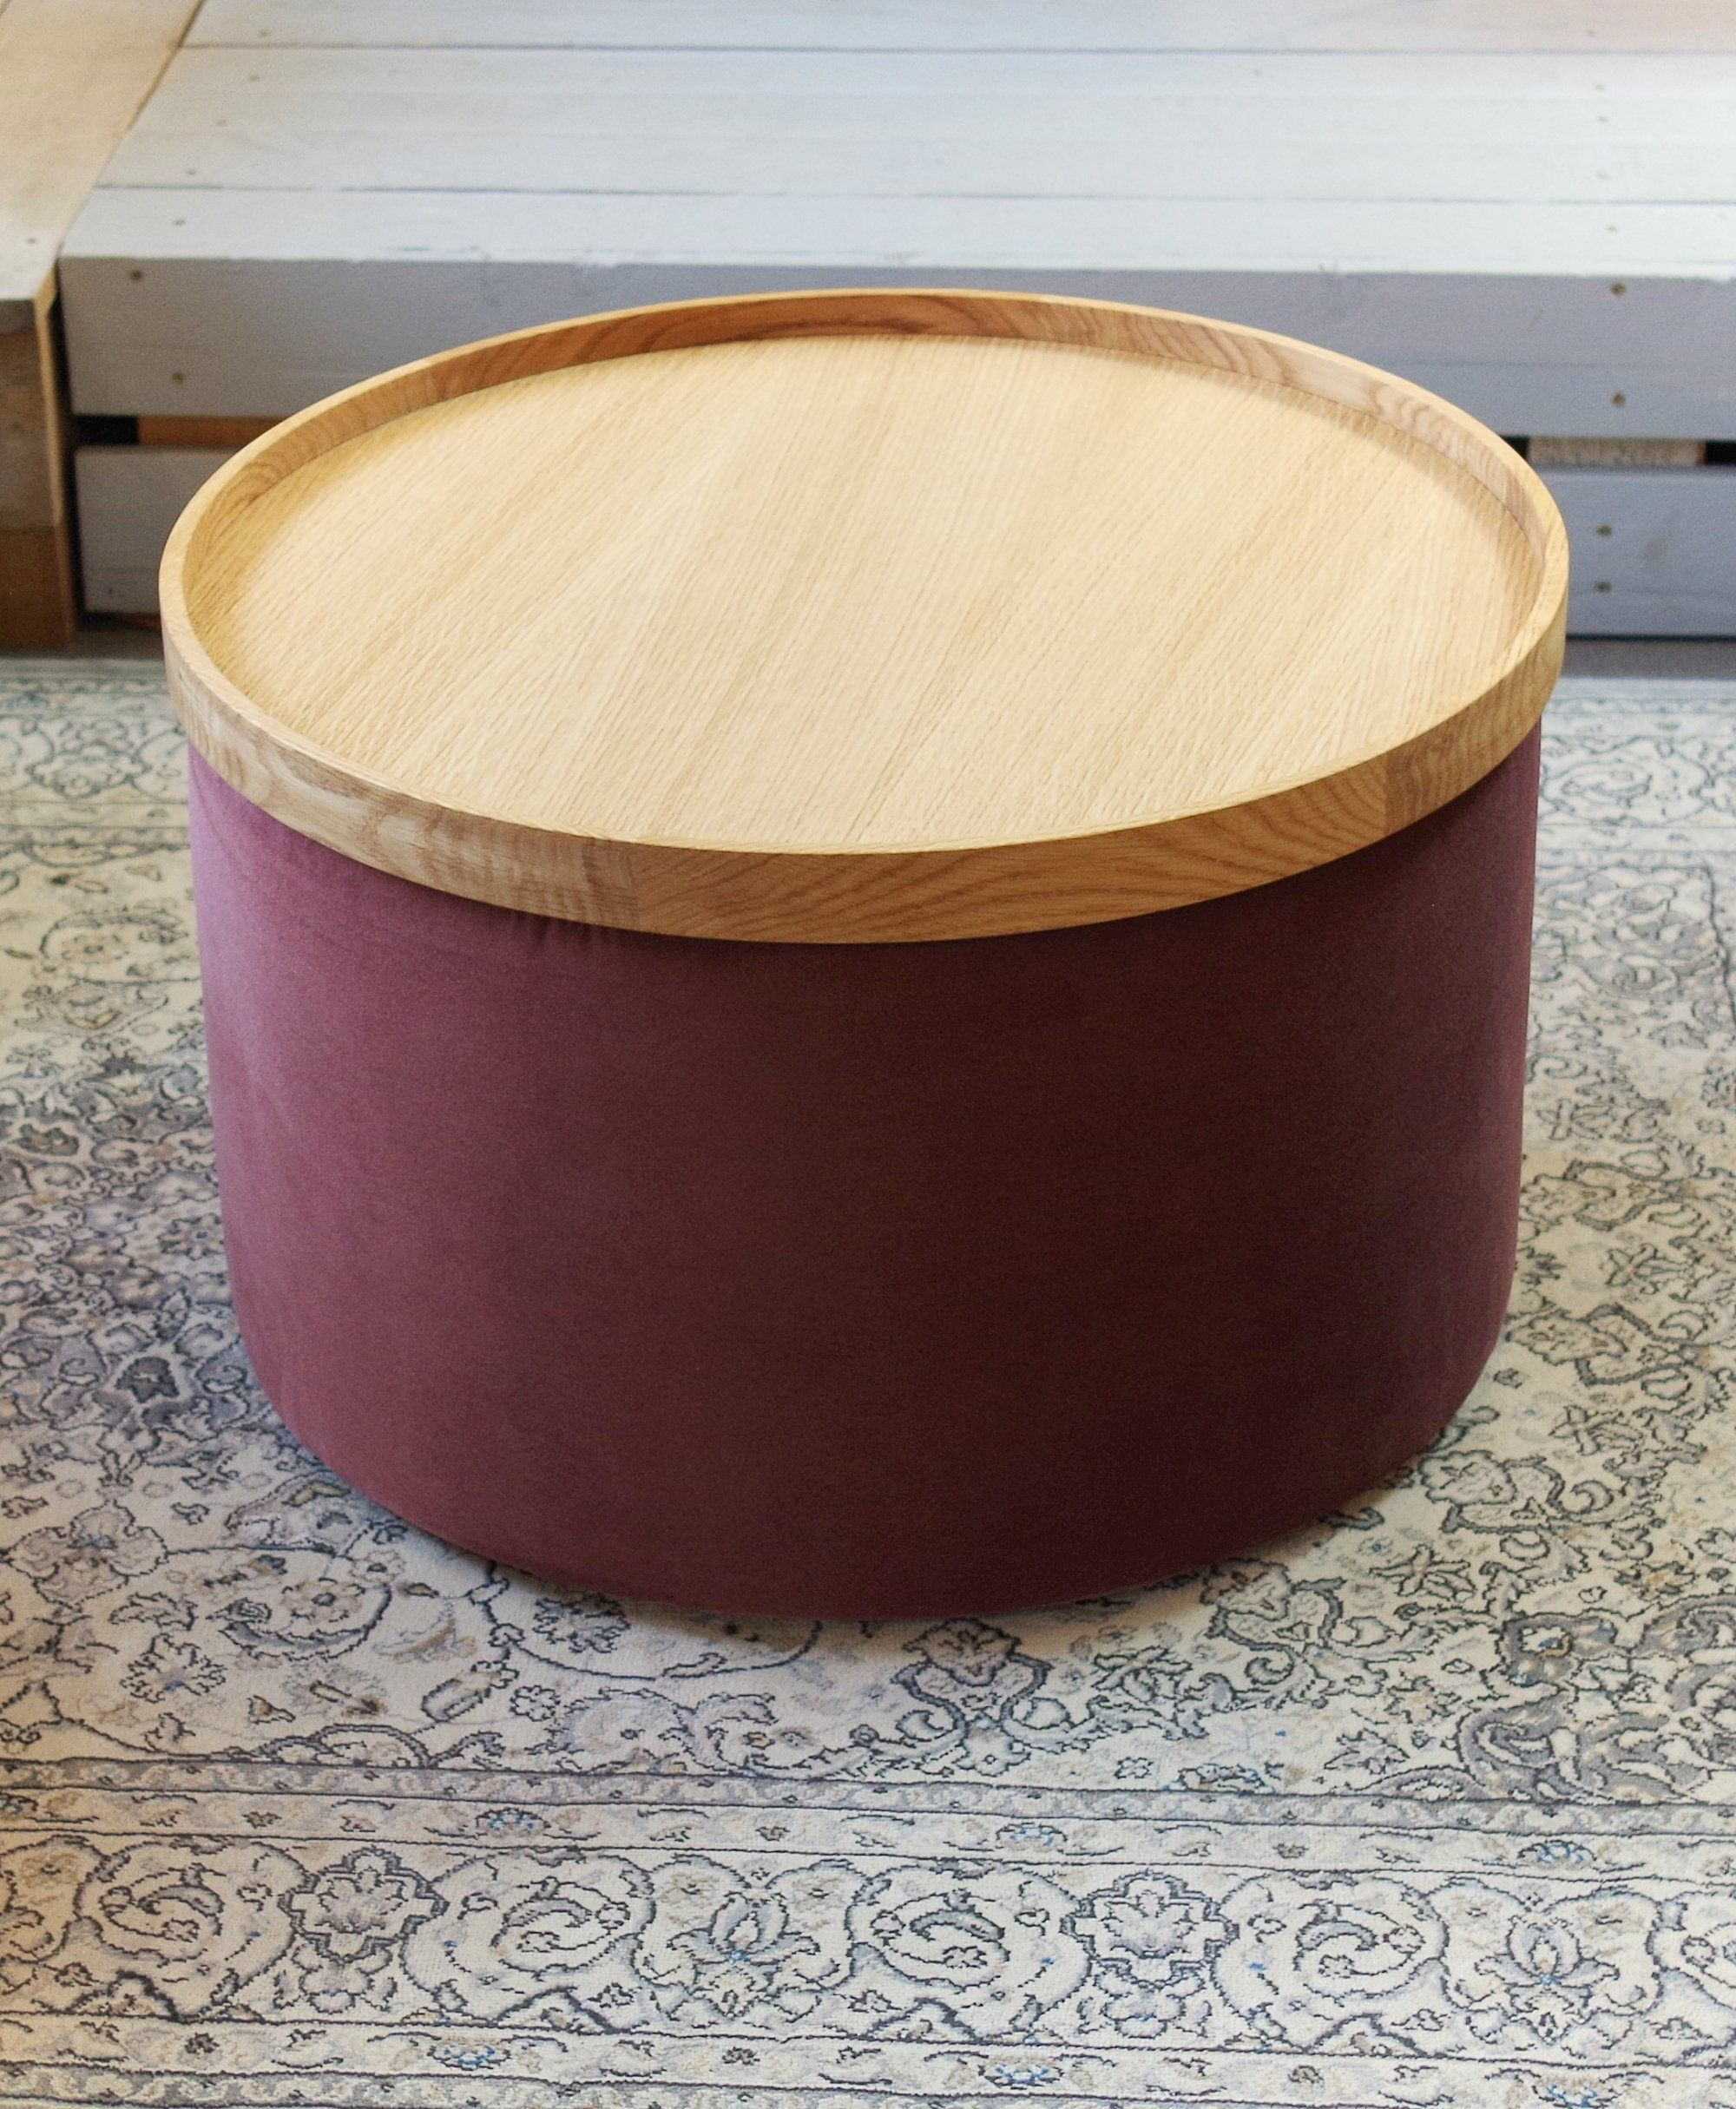 Set Of Big Round Blue Pouf And Wooden Oak Tray Velvet Ottoman Pouf Side Table Floor Pouf Home Decor Pouf Coffee Table Pouf Pouf Coffee Table Coffee Table Pouf Floor Pouf [ jpg ]